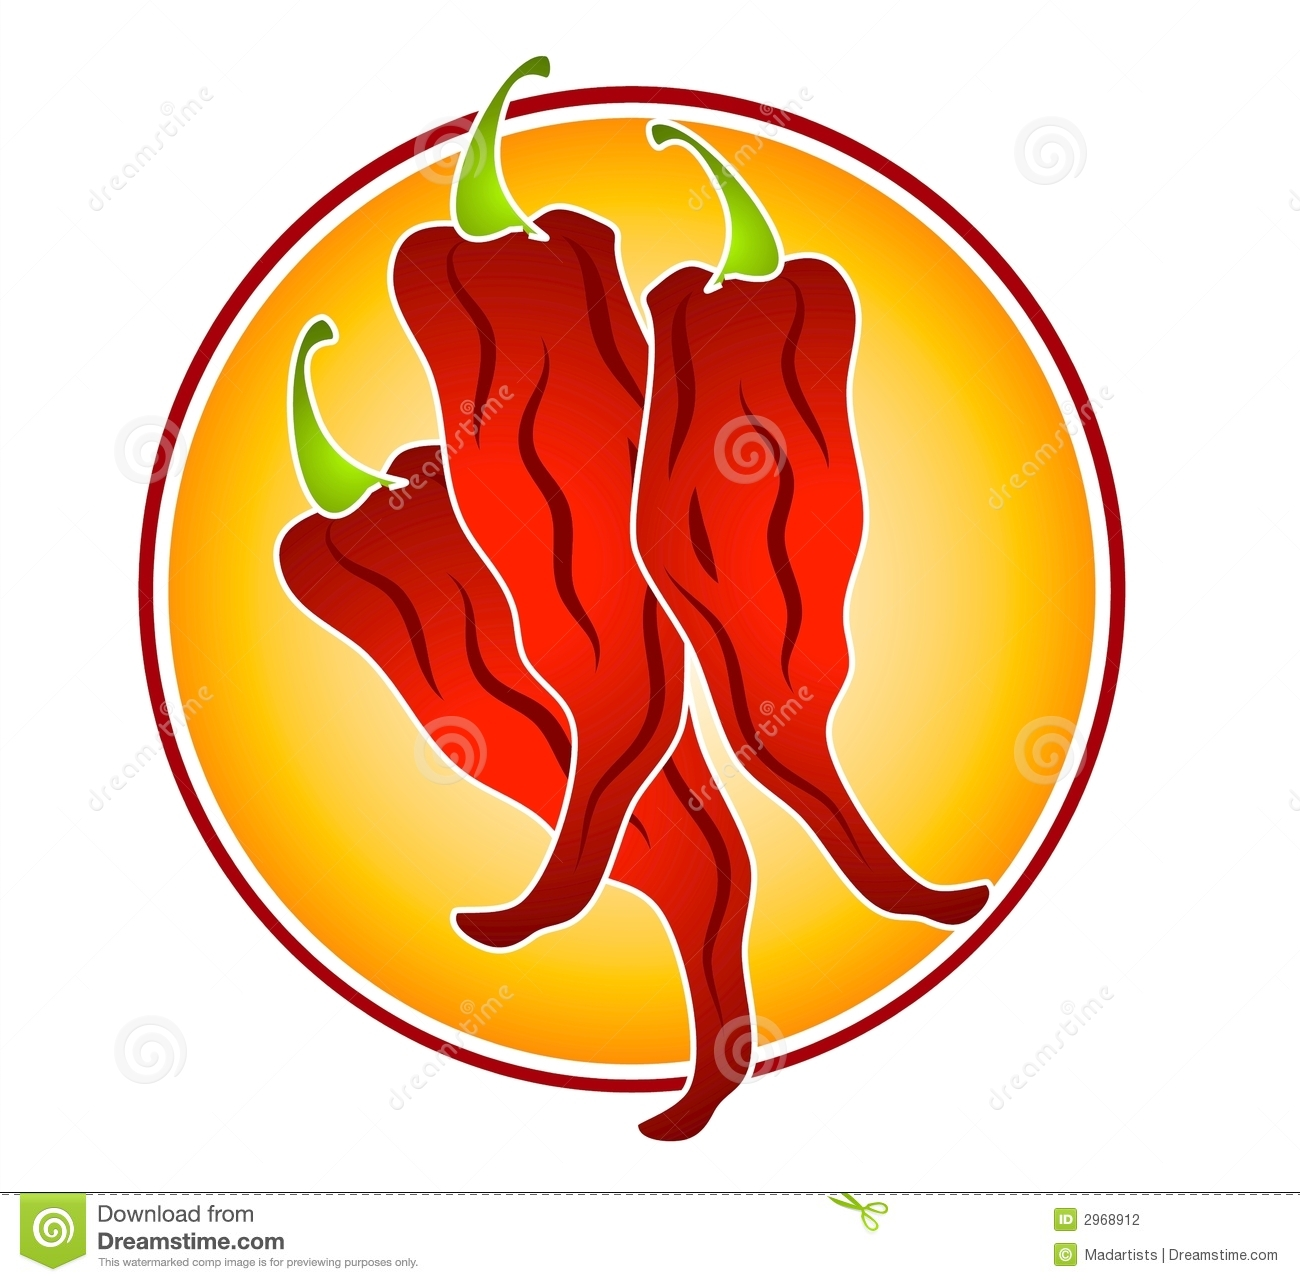 Red Chili Pepper Clipart.